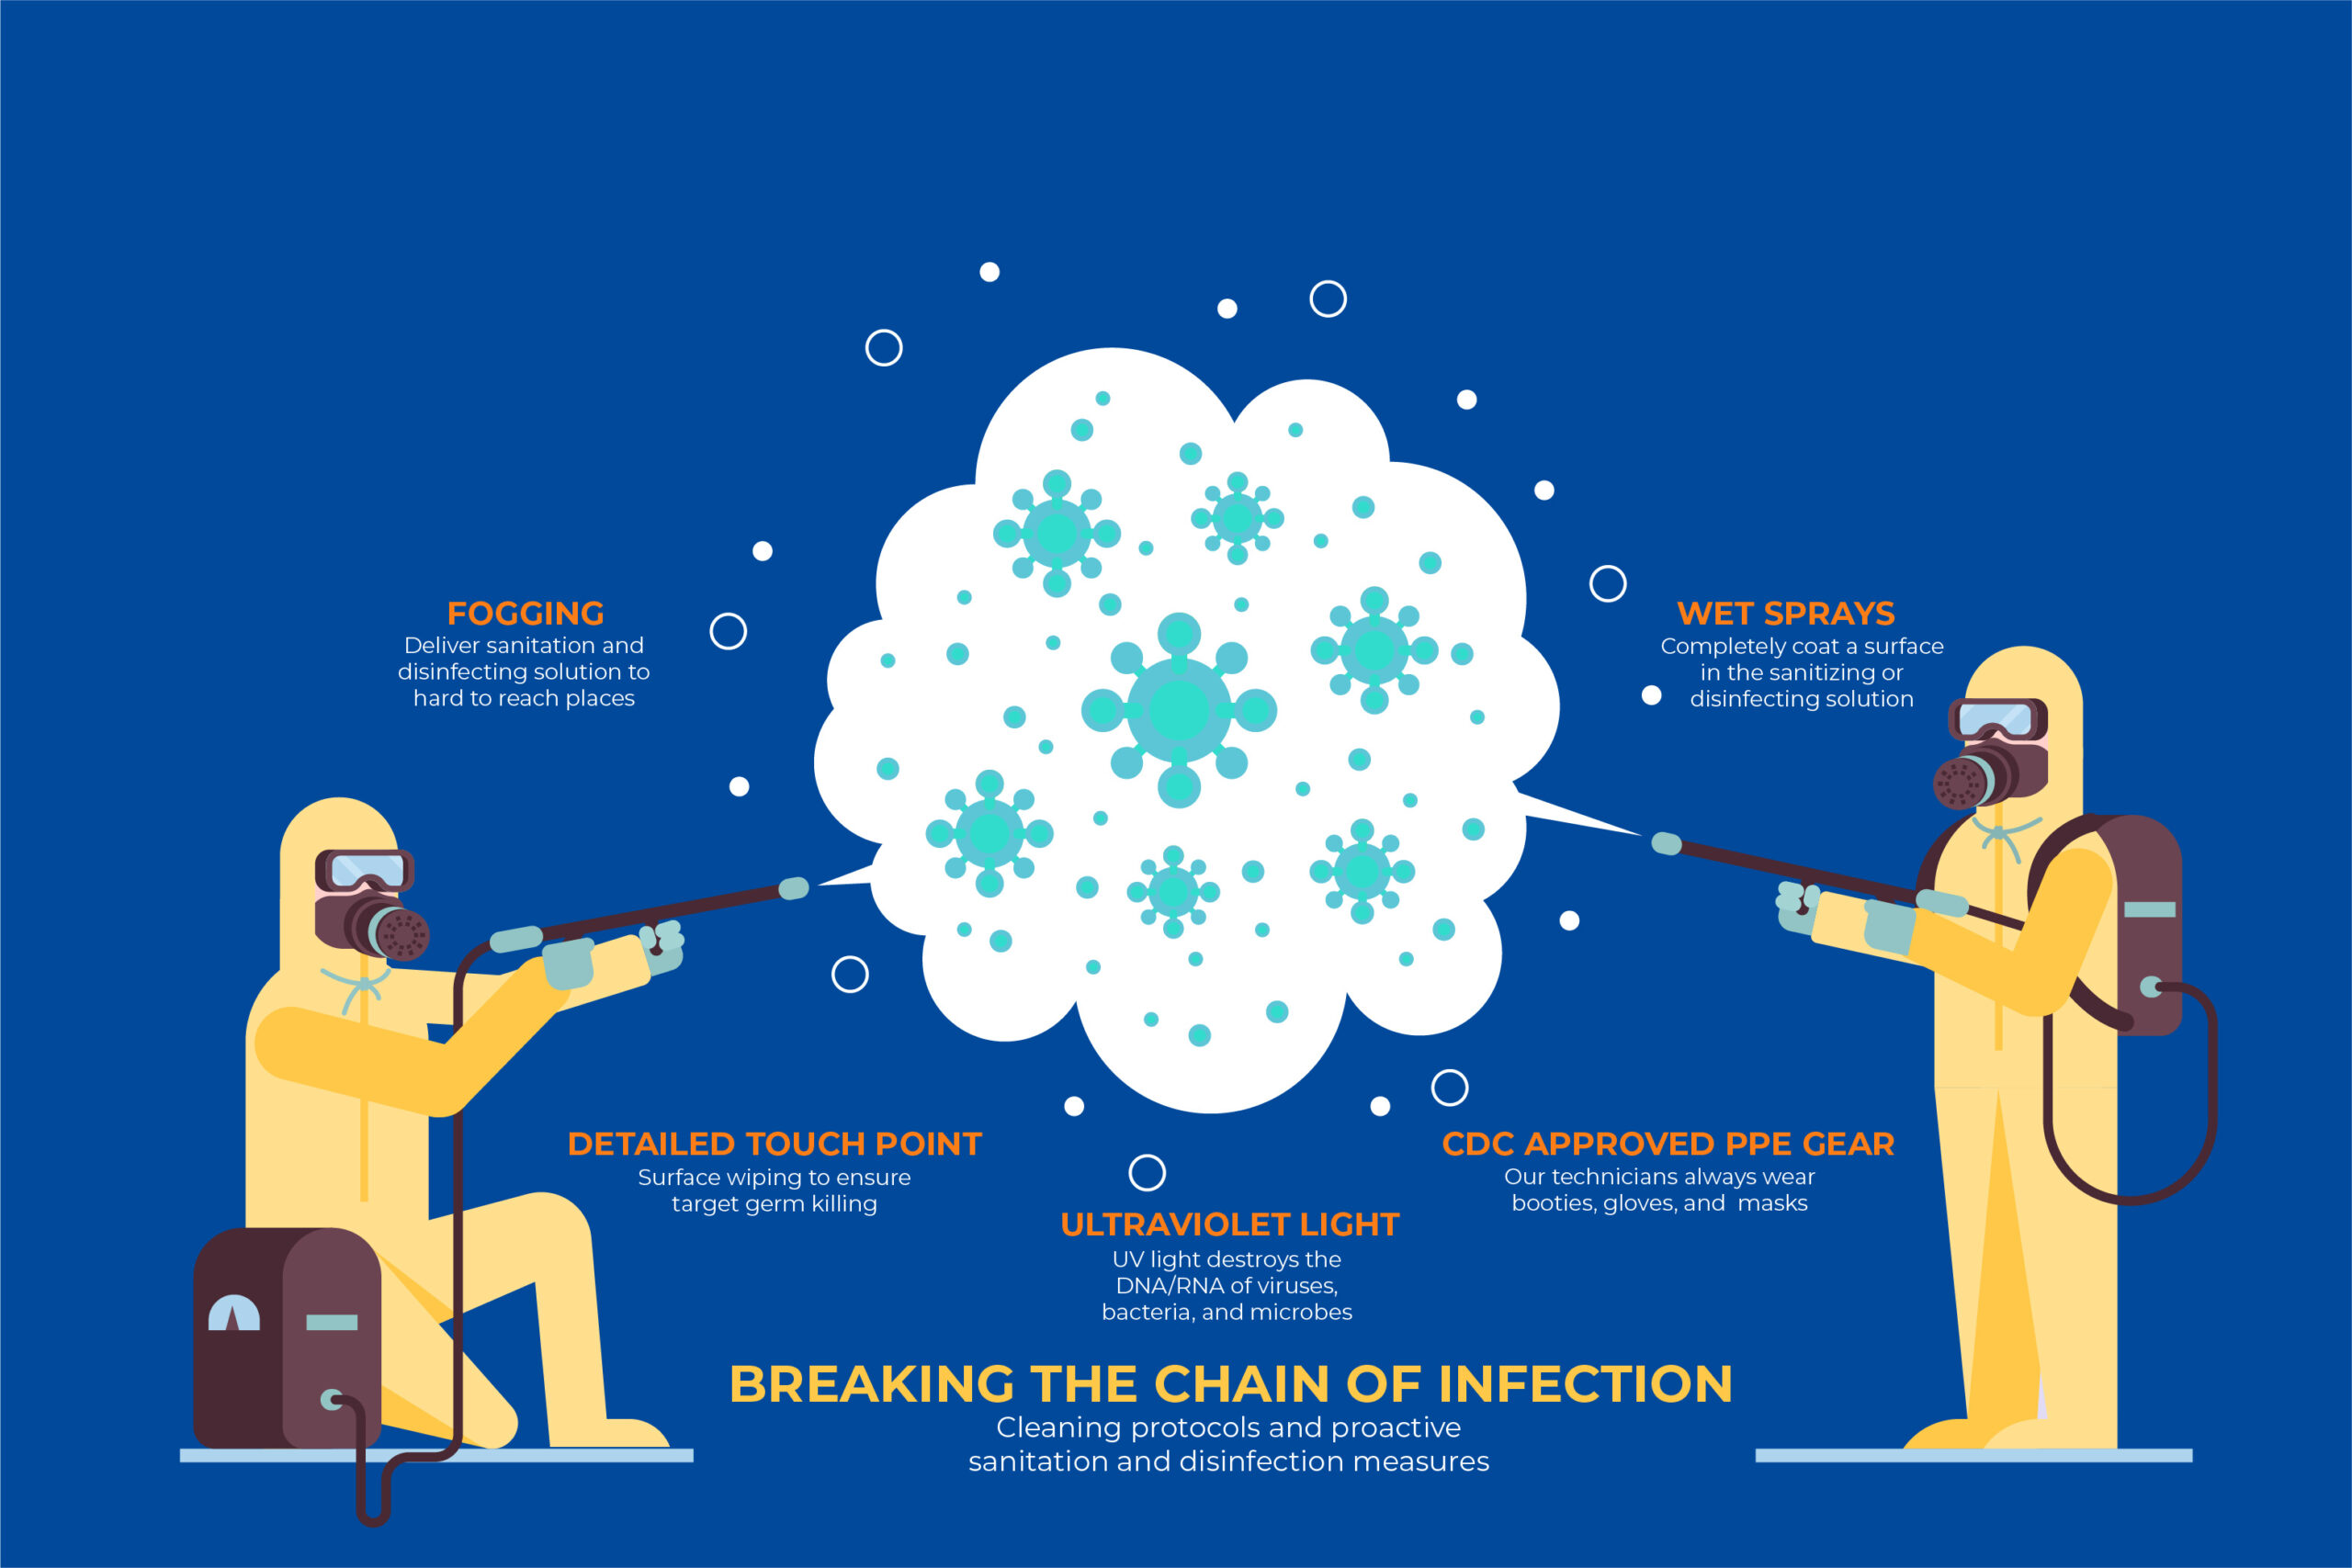 professional disinfection services